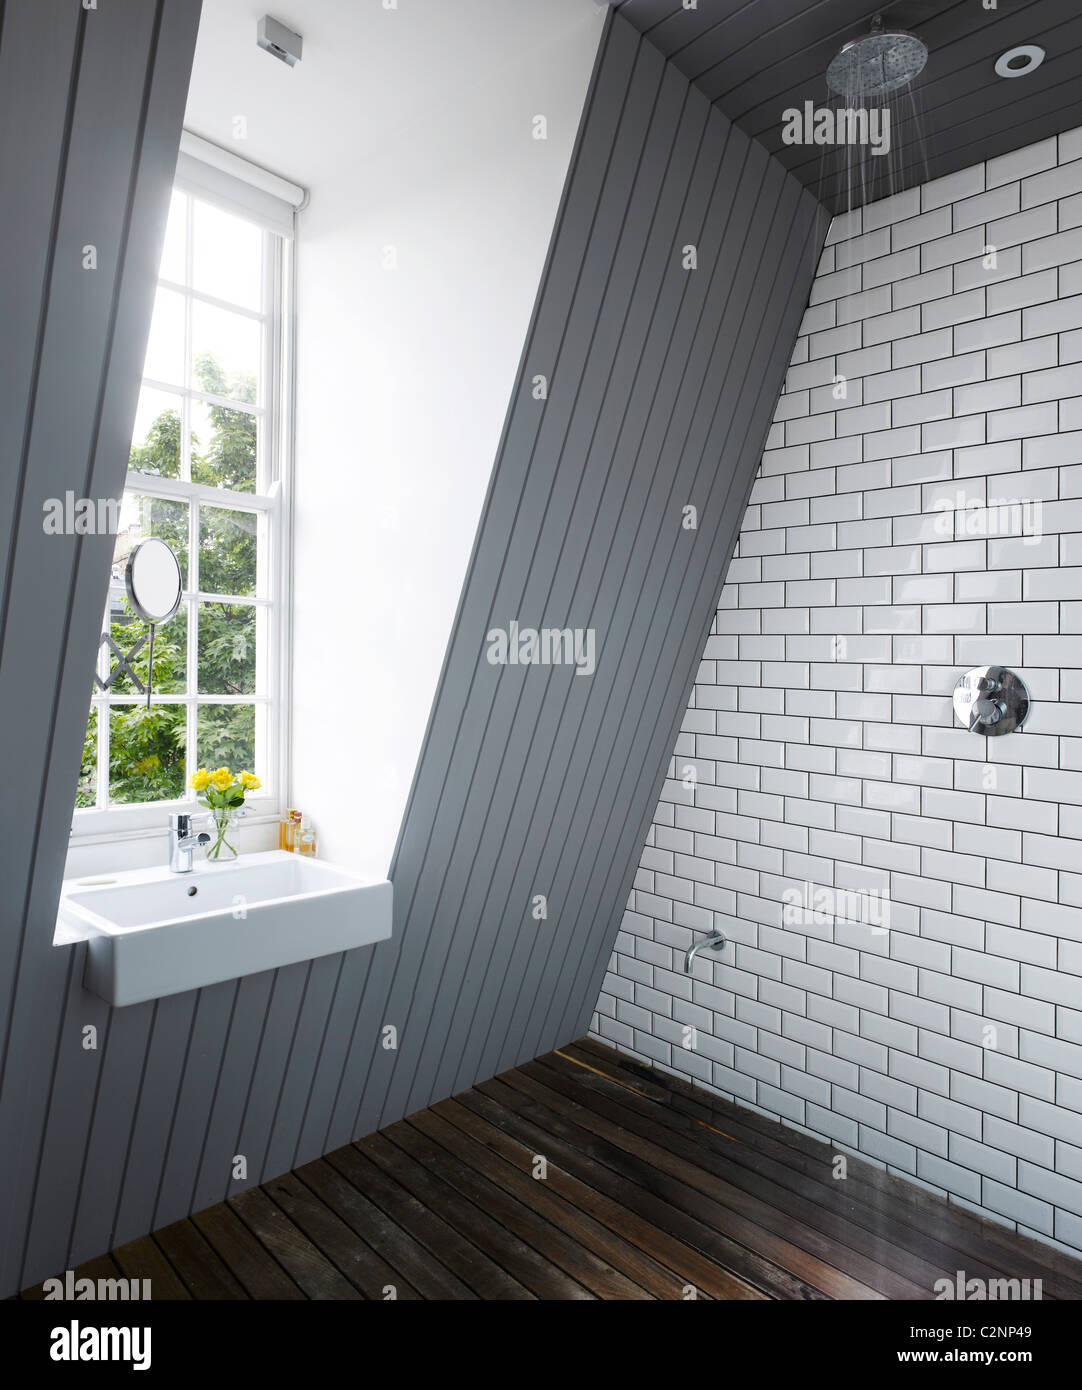 Bathroom in Attic Extention of Islington House by Dominic McKenzie. - Stock Image